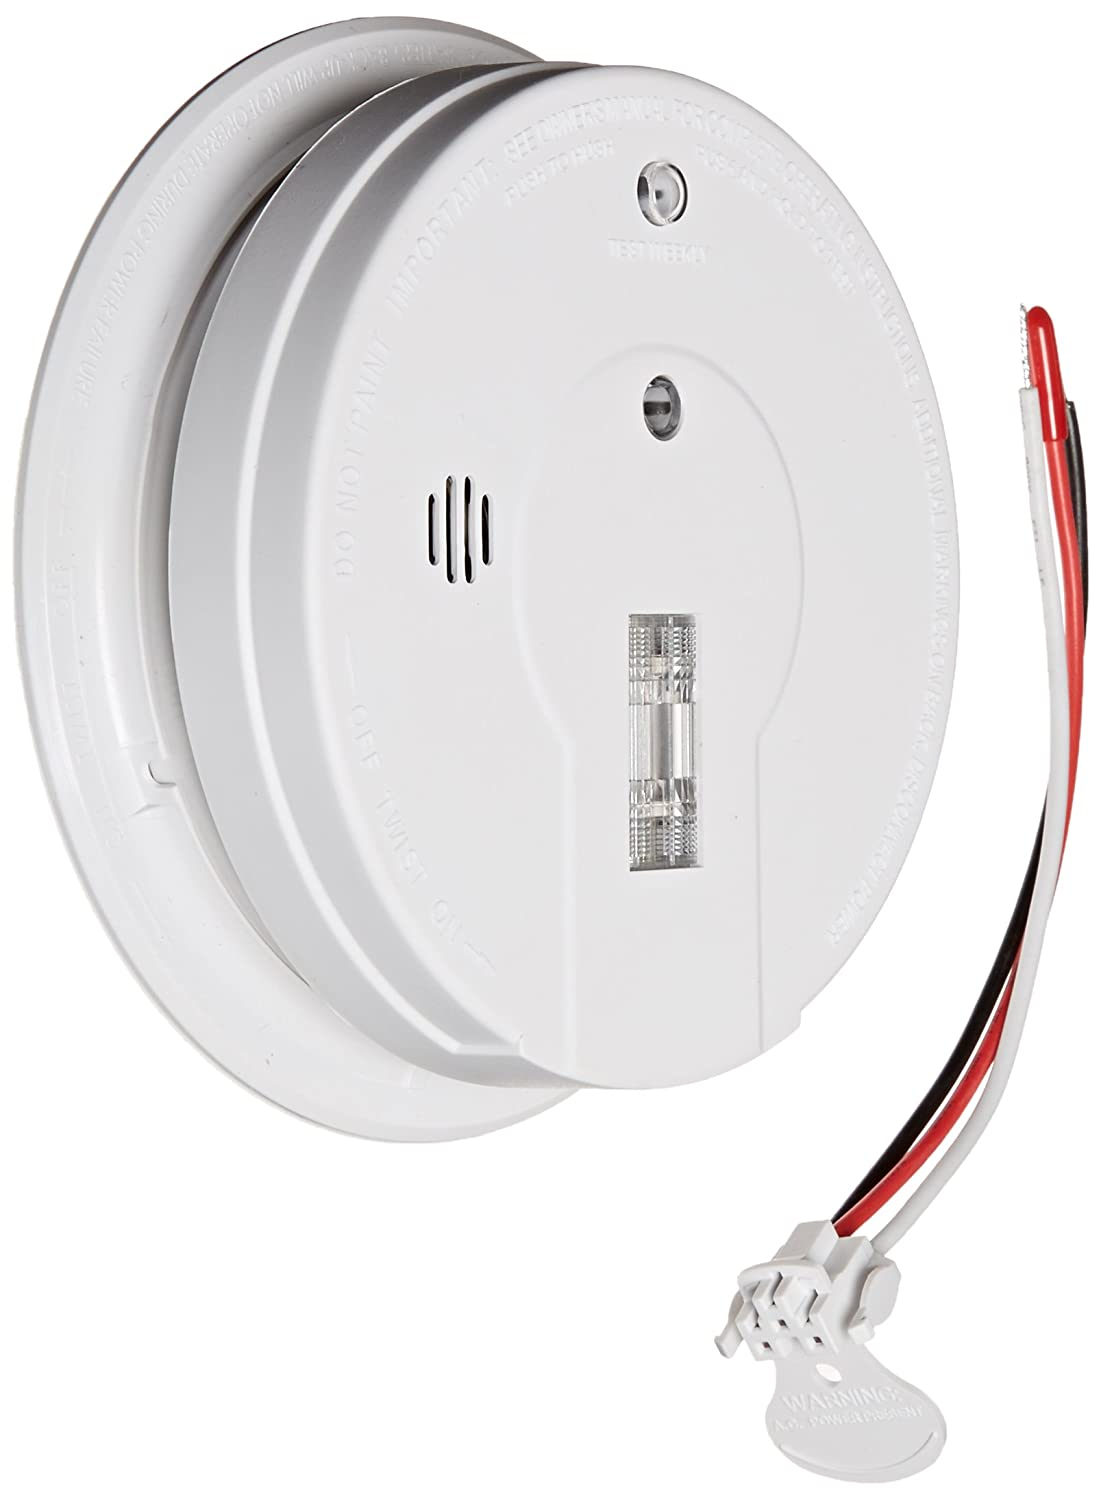 71nY3R822iL._SL1500_ kidde 408 21006379 firex i12080 hardwire smoke alarm with exit firex i4618 wiring harness at n-0.co